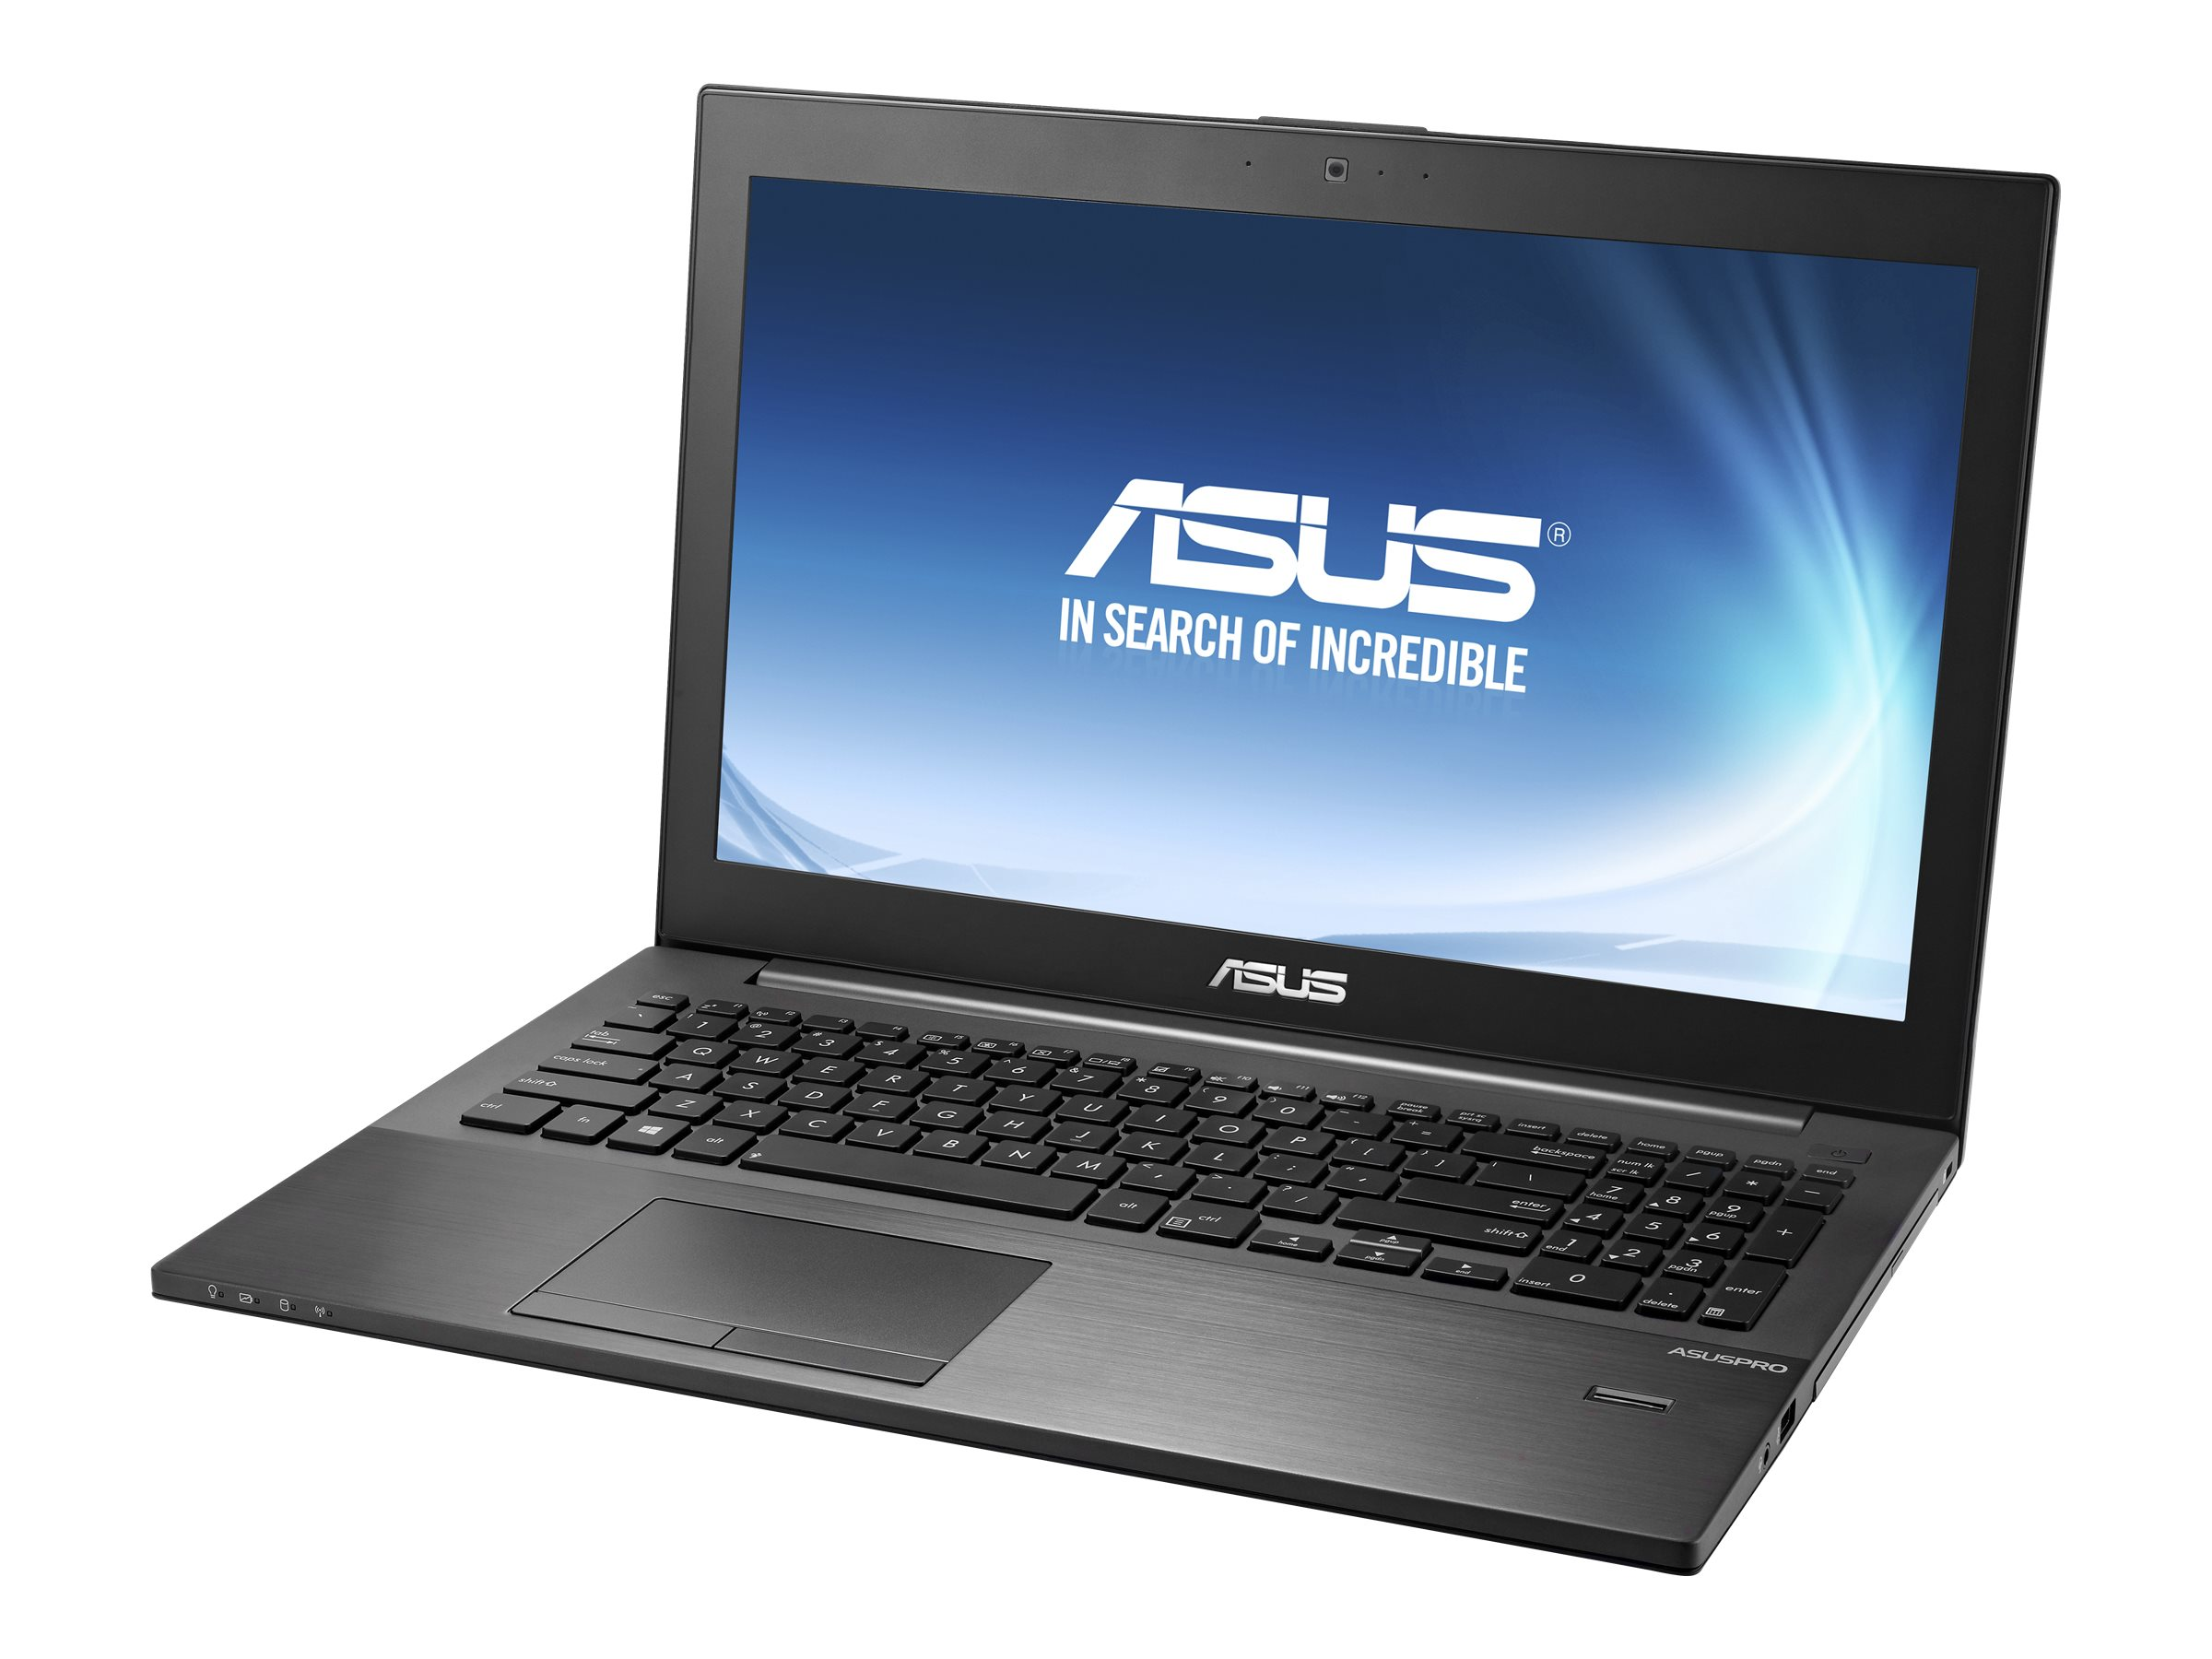 Asus E551LA-XB51 Notebook Core i5-4200U 8GB 500GB 15.6, E551LA-XB51, 17370340, Notebooks